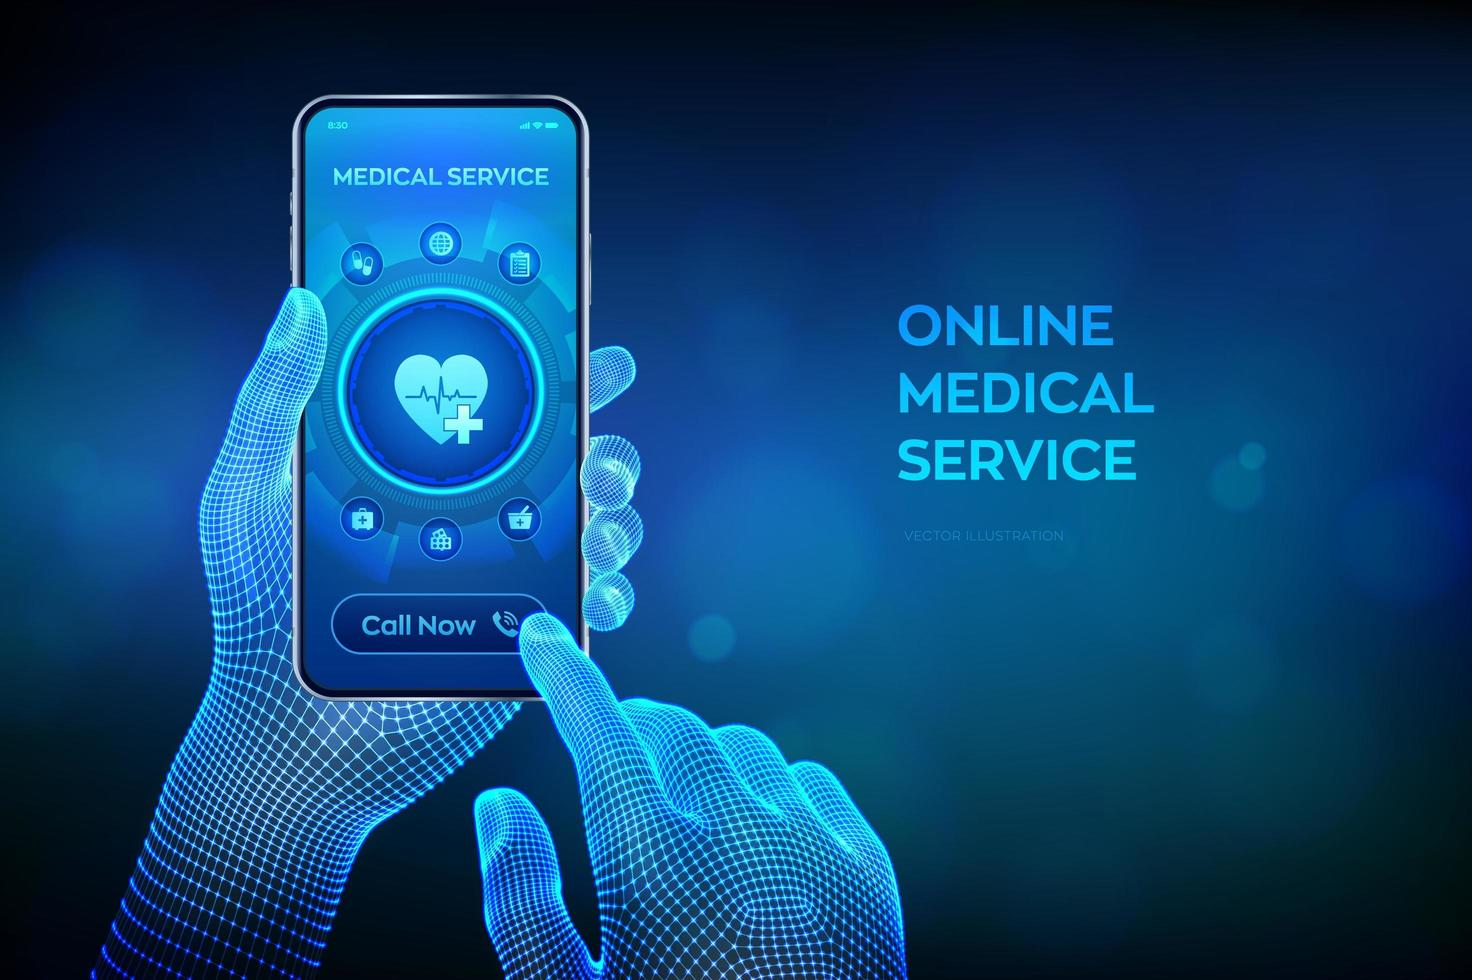 Online medical services, consultation and support concept vector